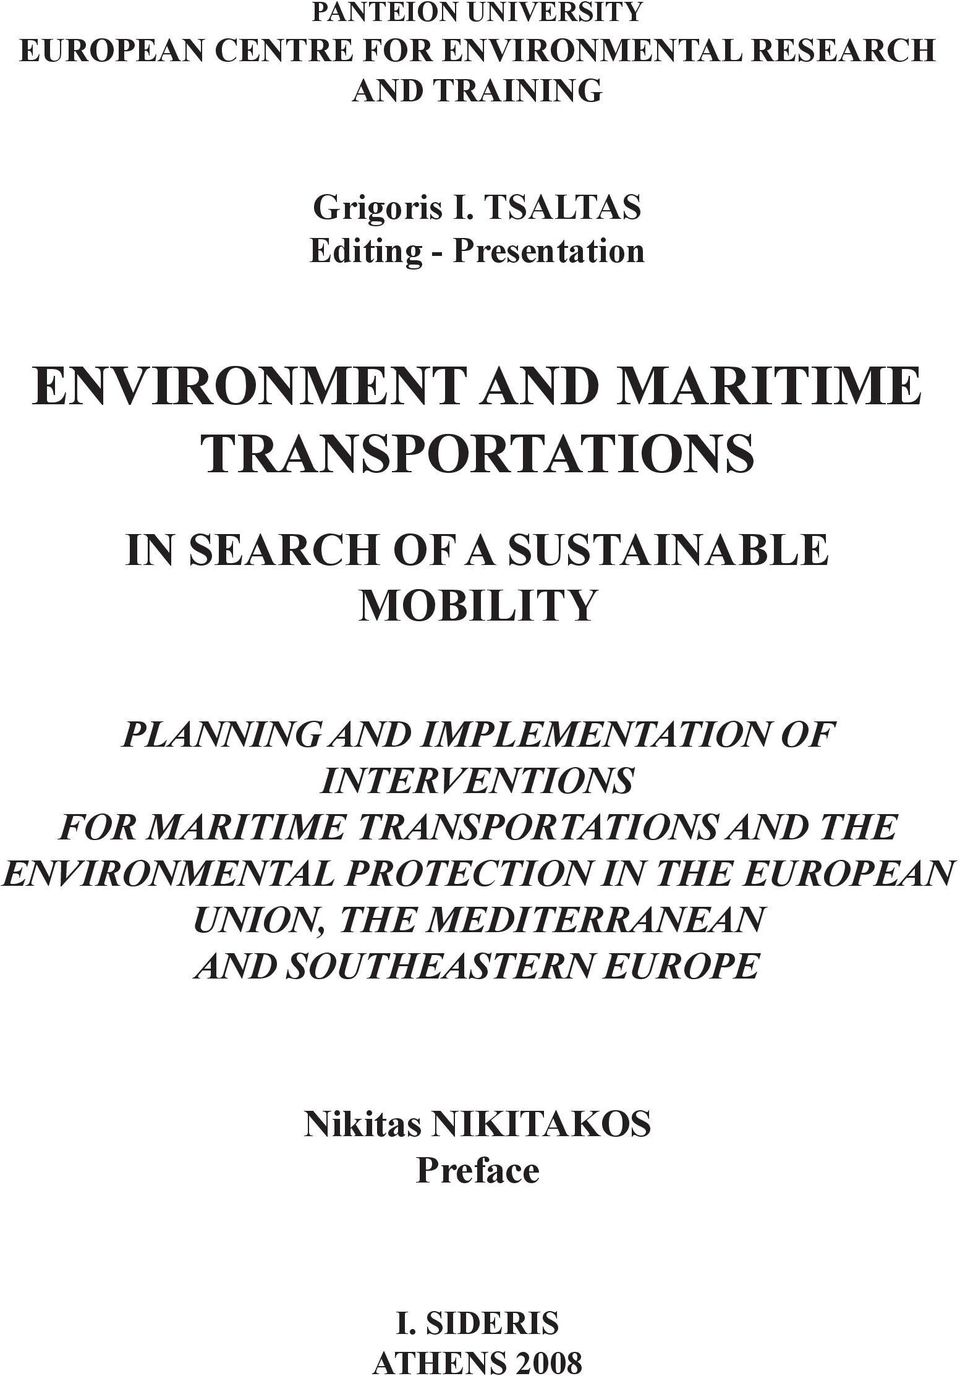 MOBILITY PLANNING AND IMPLEMENTATION OF INTERVENTIONS FOR MARITIME TRANSPORTATIONS AND THE